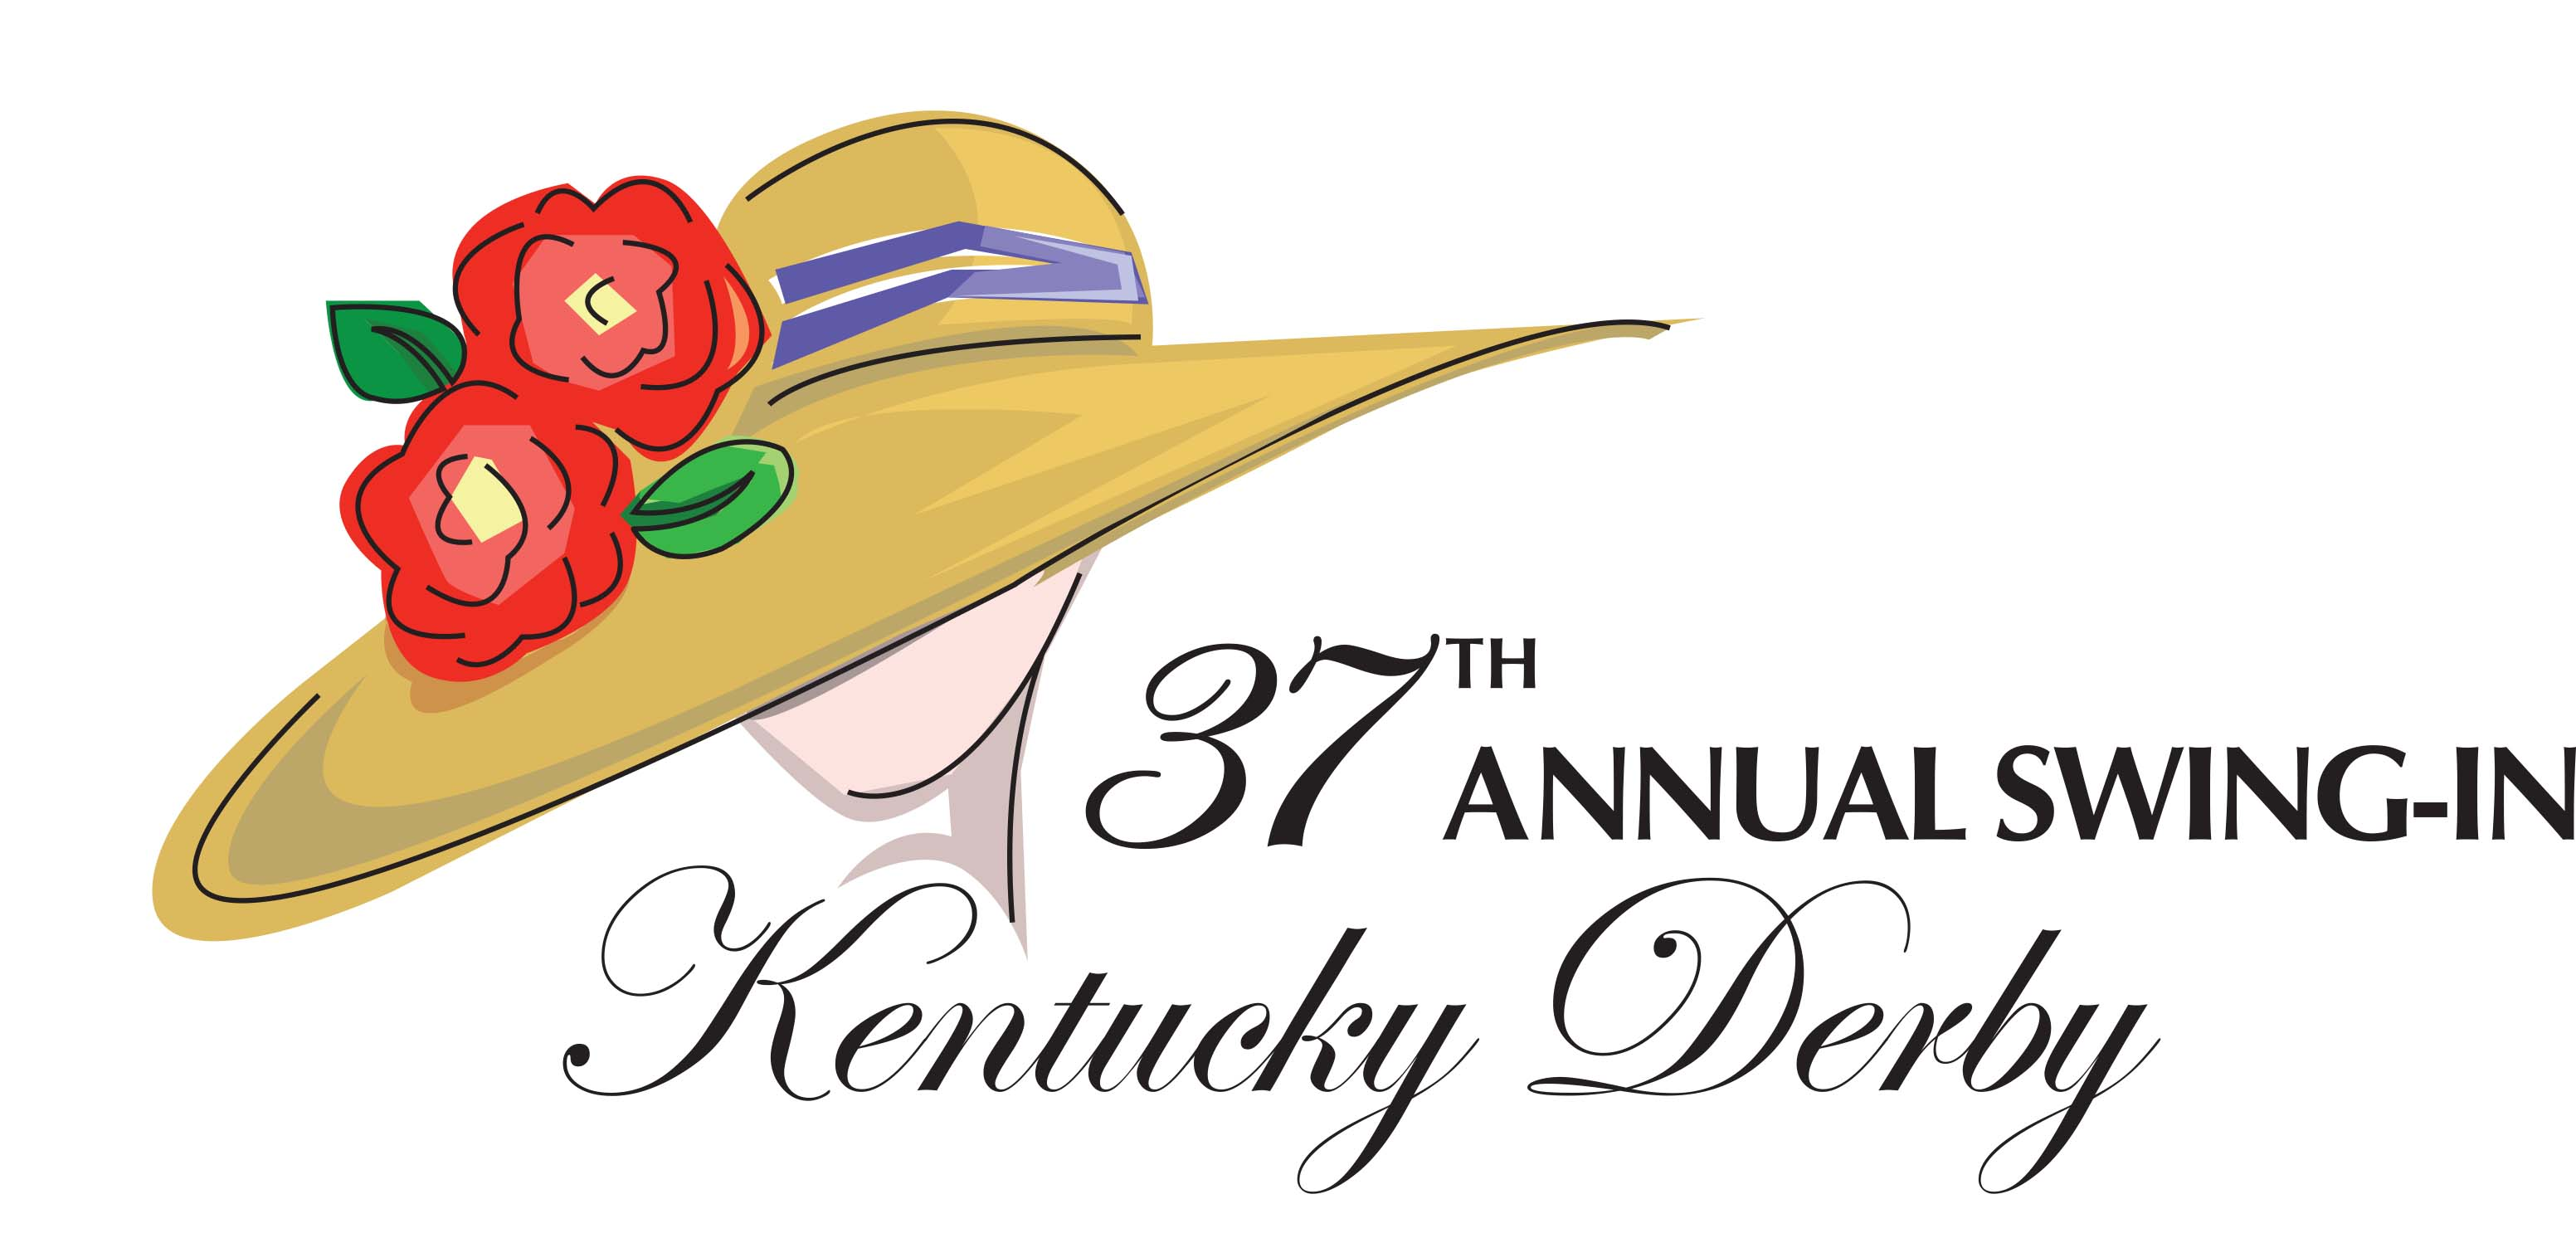 37th Annual Swing-In Kentucky Derby